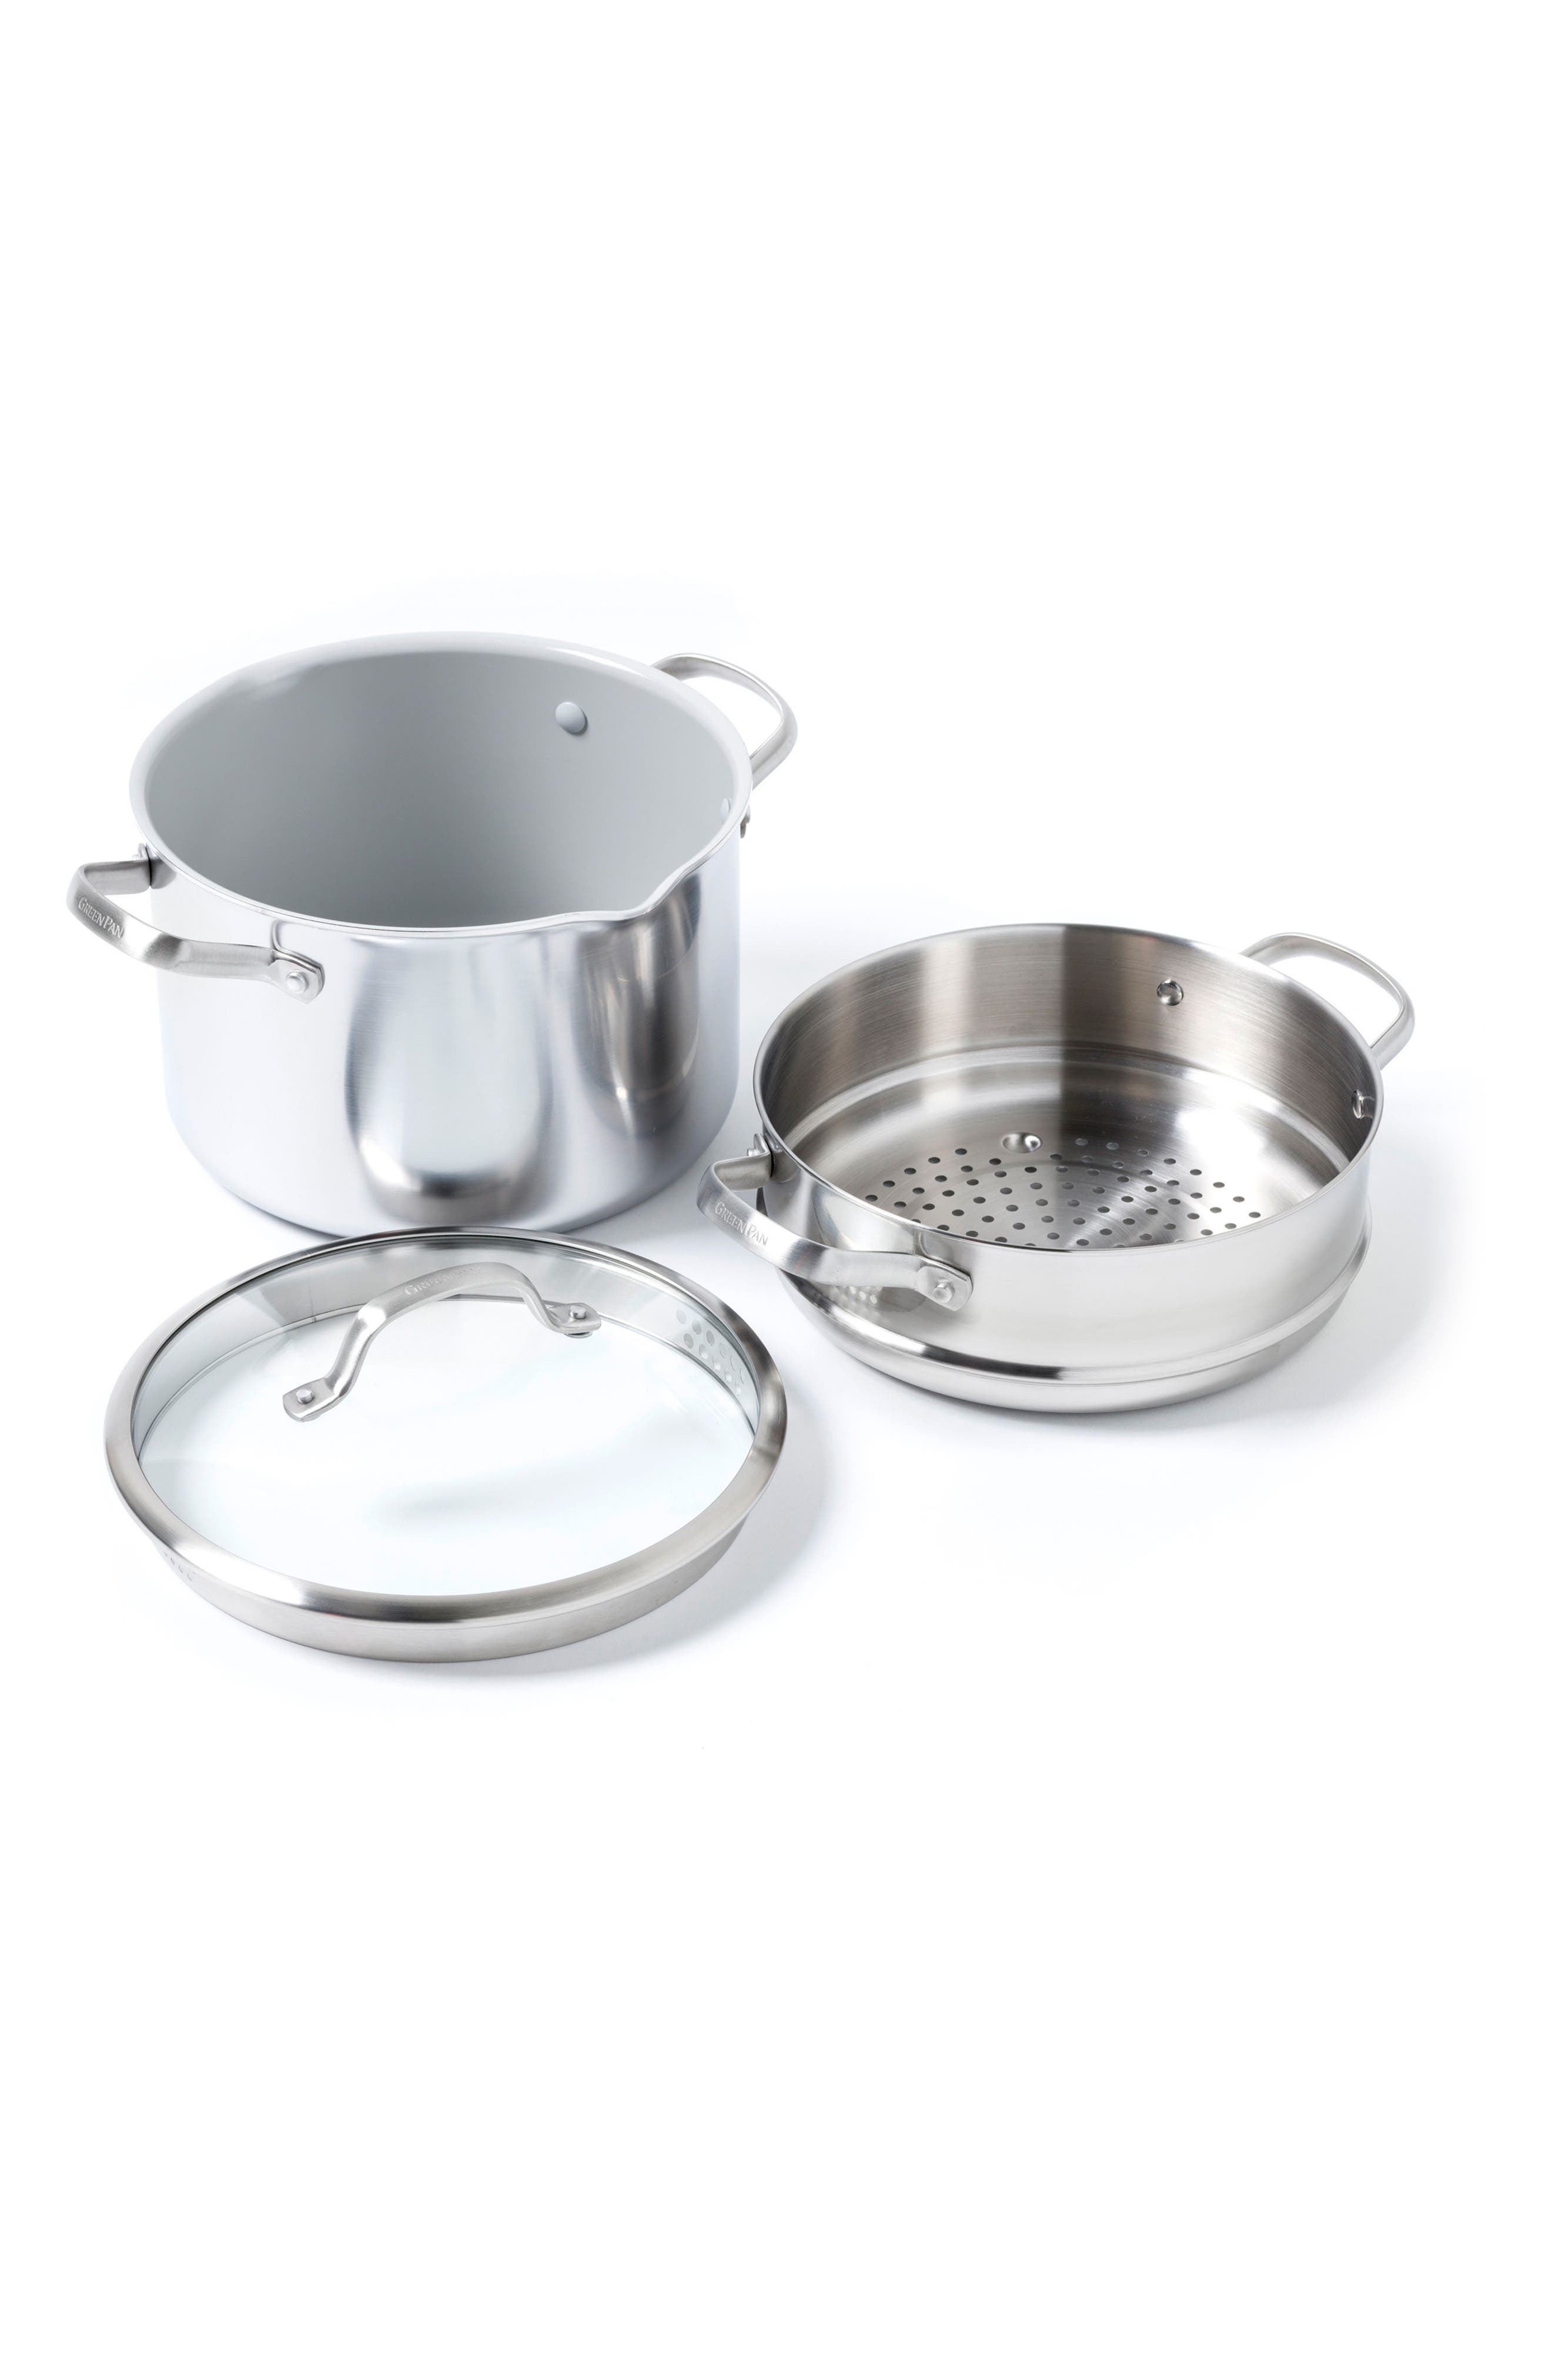 Alternate Image 1 Selected - GreenPan Venice Pro 8-Quart Multilayer Stainless Steel Ceramic Nonstick Stock Pot with Steamer Inset & Glass Lid